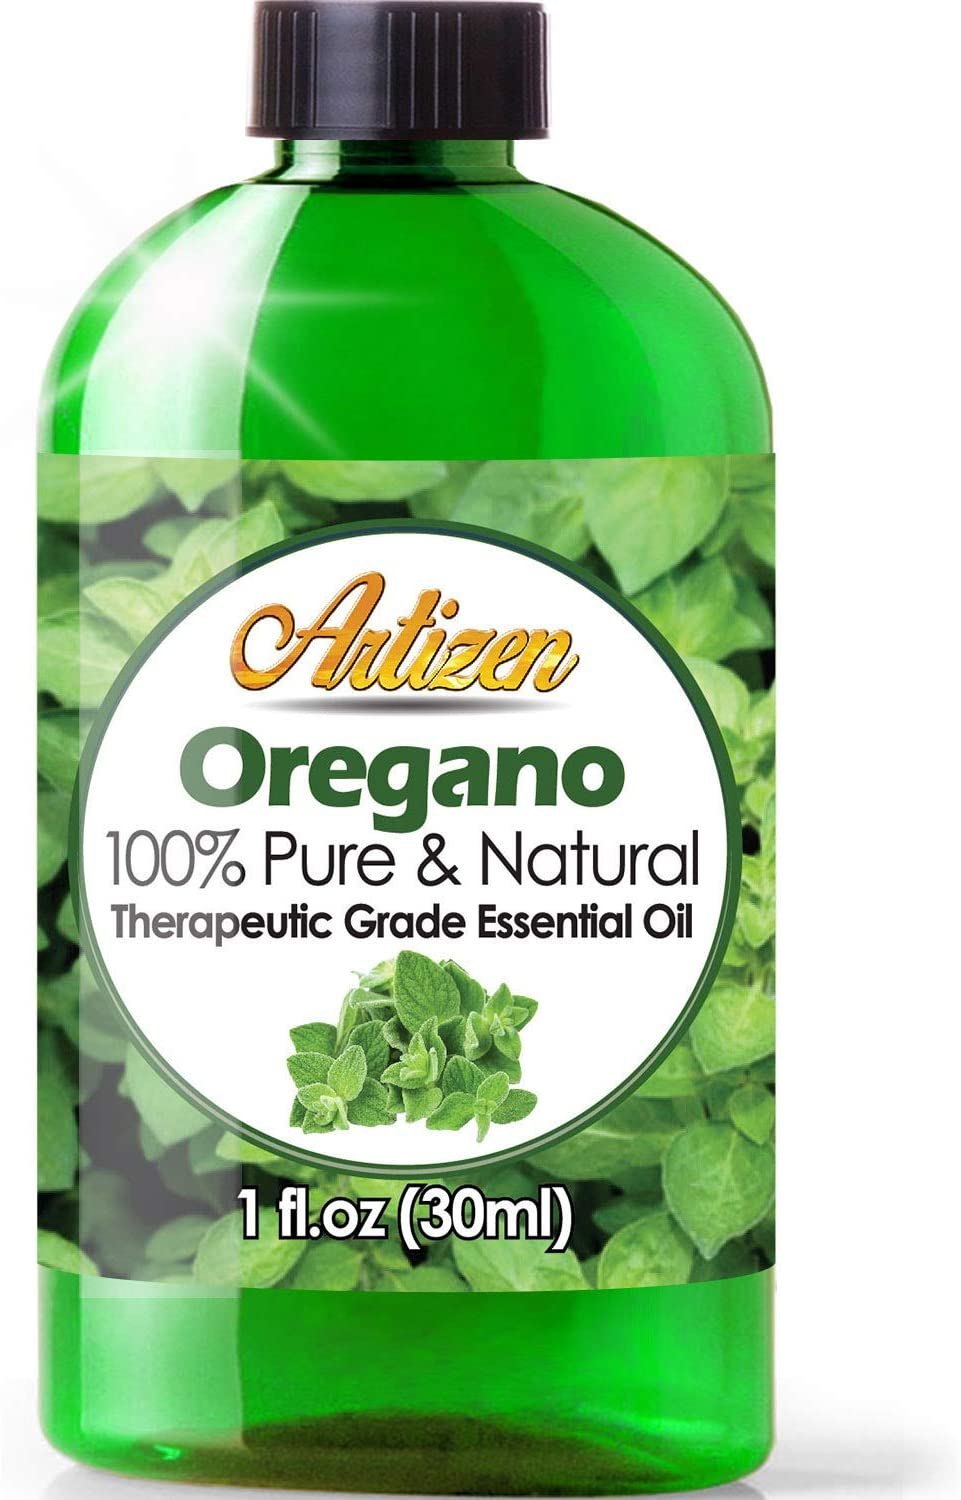 Artizen Oregano Essential Oil (100% PURE & NATURAL - UNDILUTED) Therapeutic Grade - Huge 1oz Bottle - Perfect for Aromatherapy, Relaxation, Skin Therapy & More!